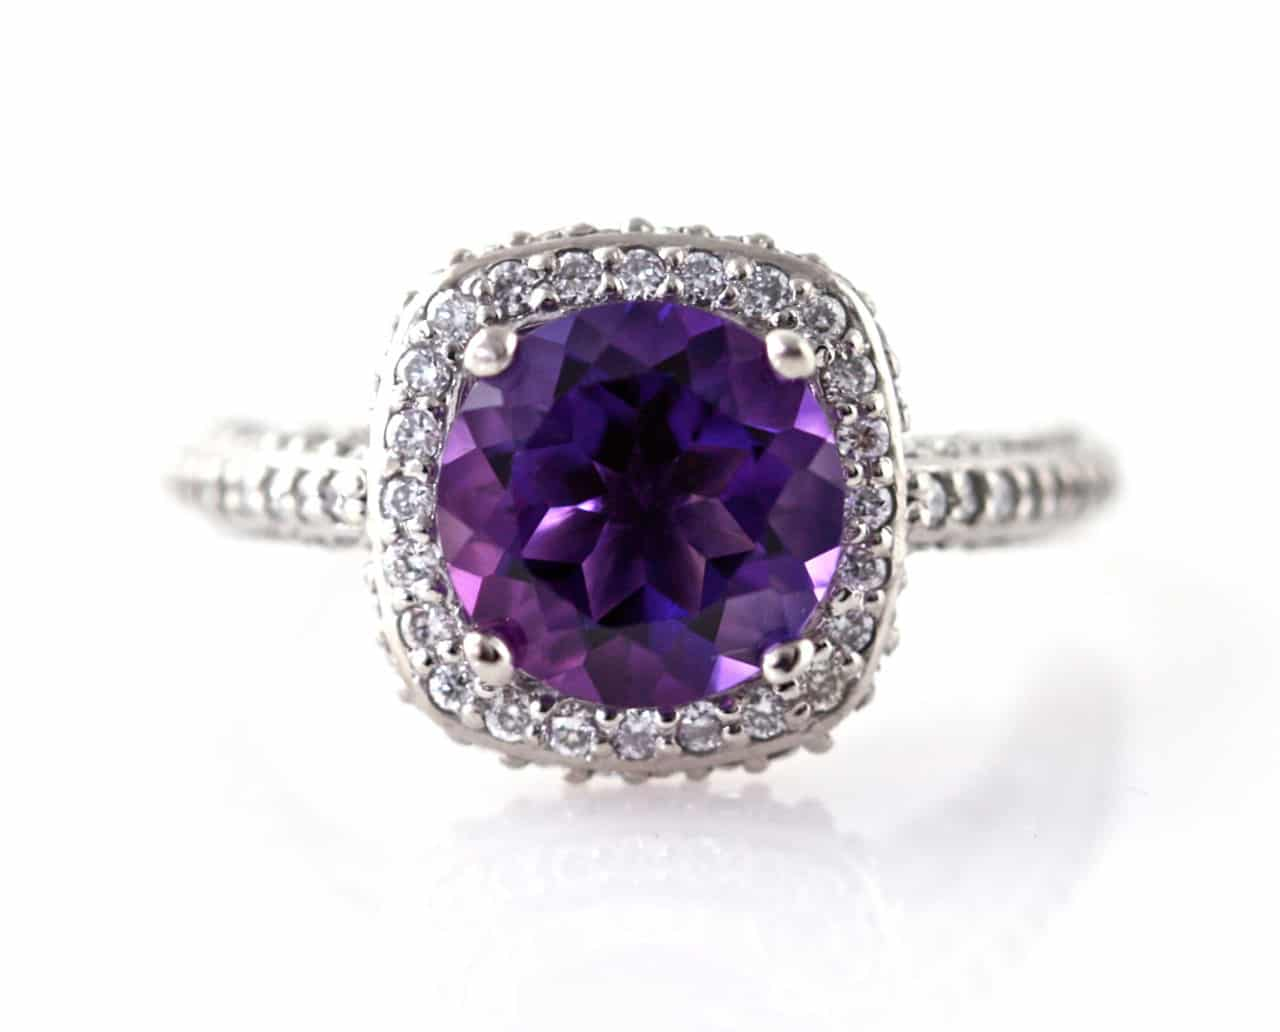 gorgeous amethyst engagement rings why you should consider them - Amethyst Wedding Ring